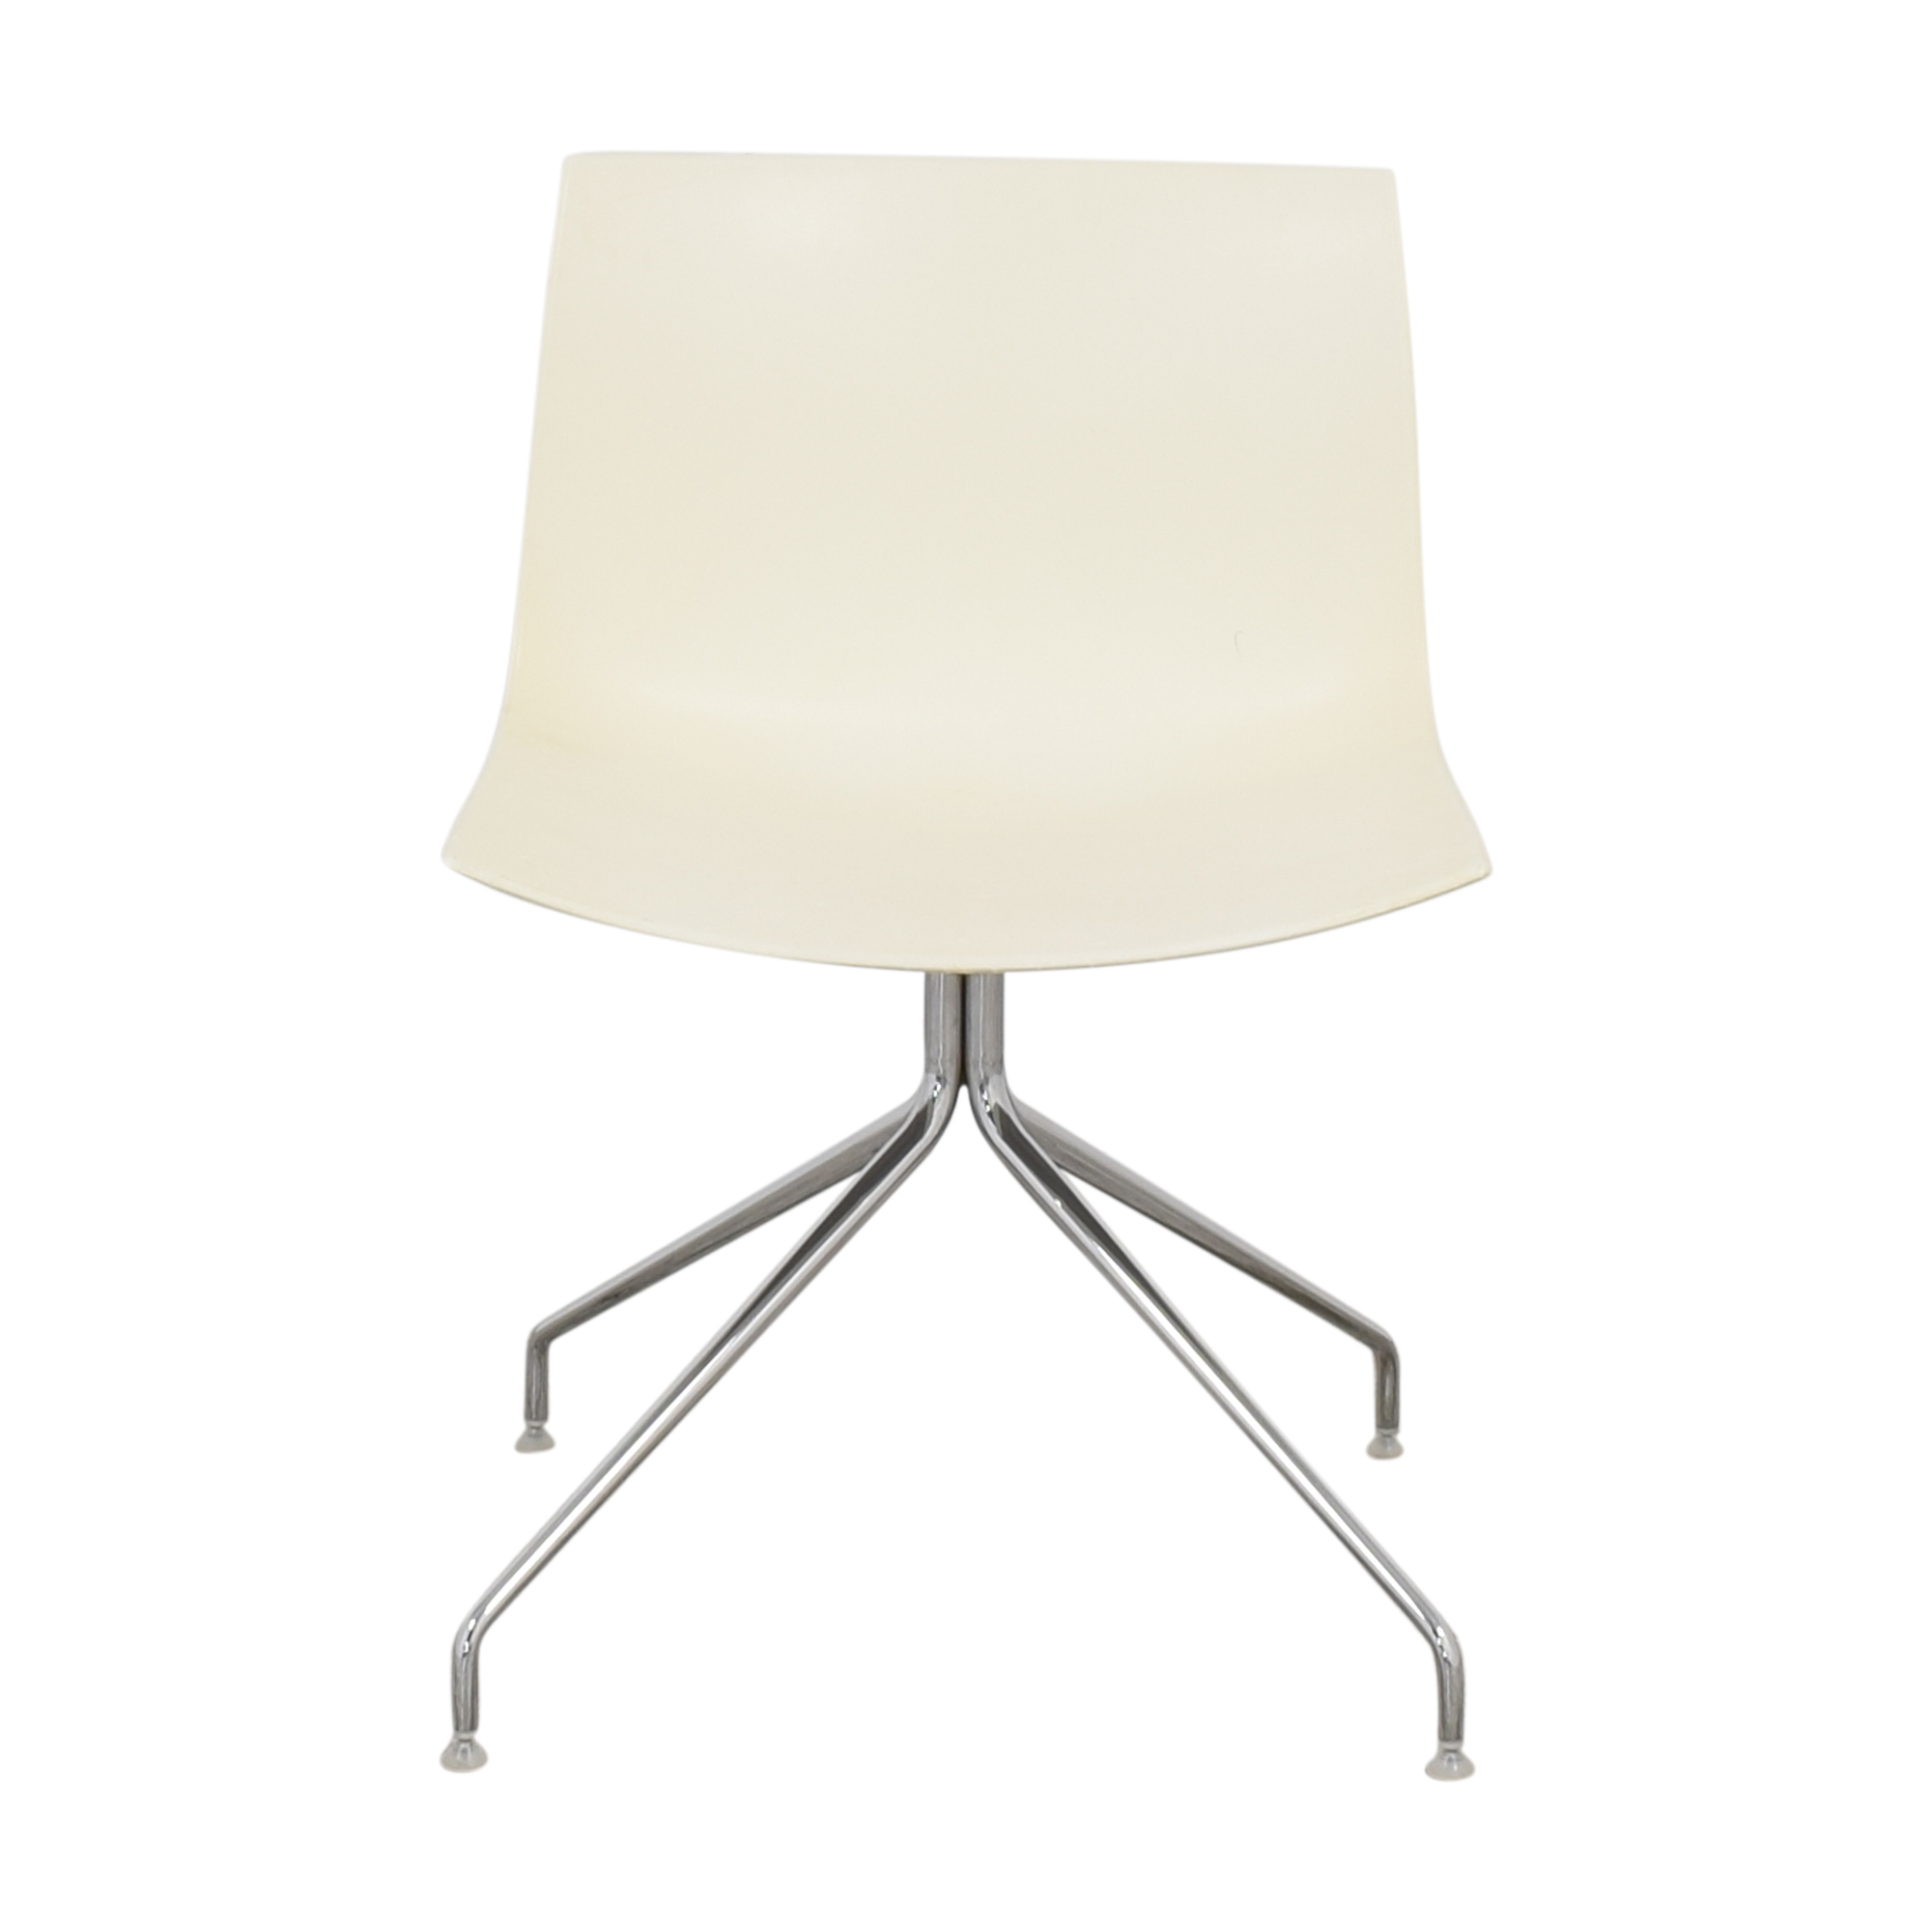 shop Arper Catifa 46 Trestle Swivel Chair Arper Chairs